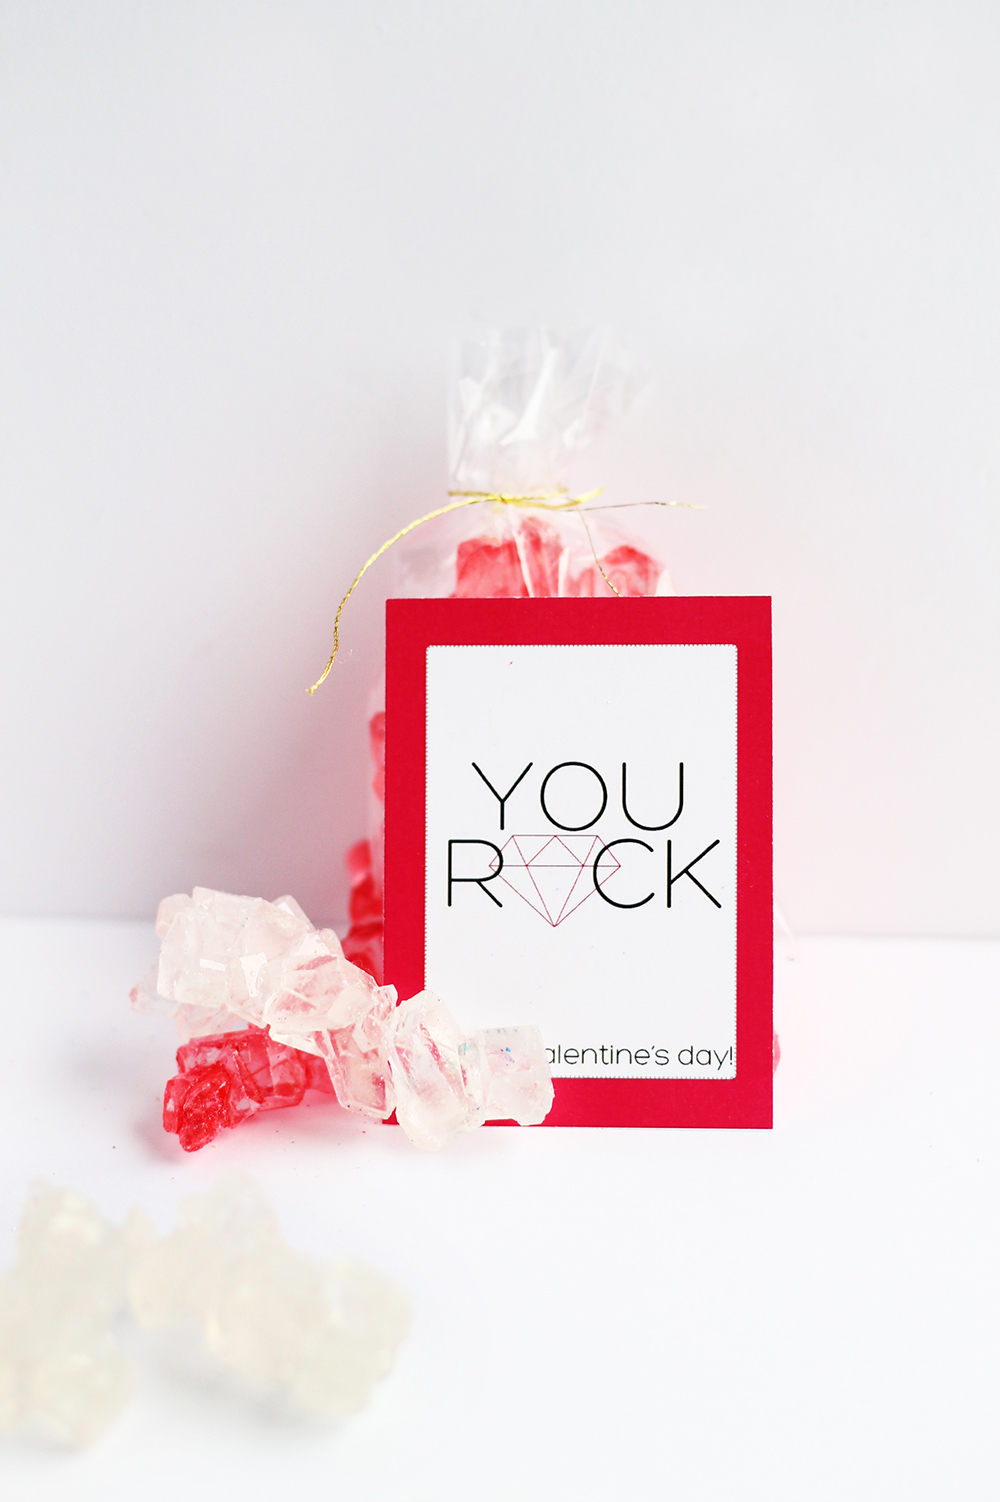 Free Printable Valentine's Day Cards from Squirrelly Minds. These are perfect for your kids at school or your own friends. Hand them out with rock candy to complete the fun message!